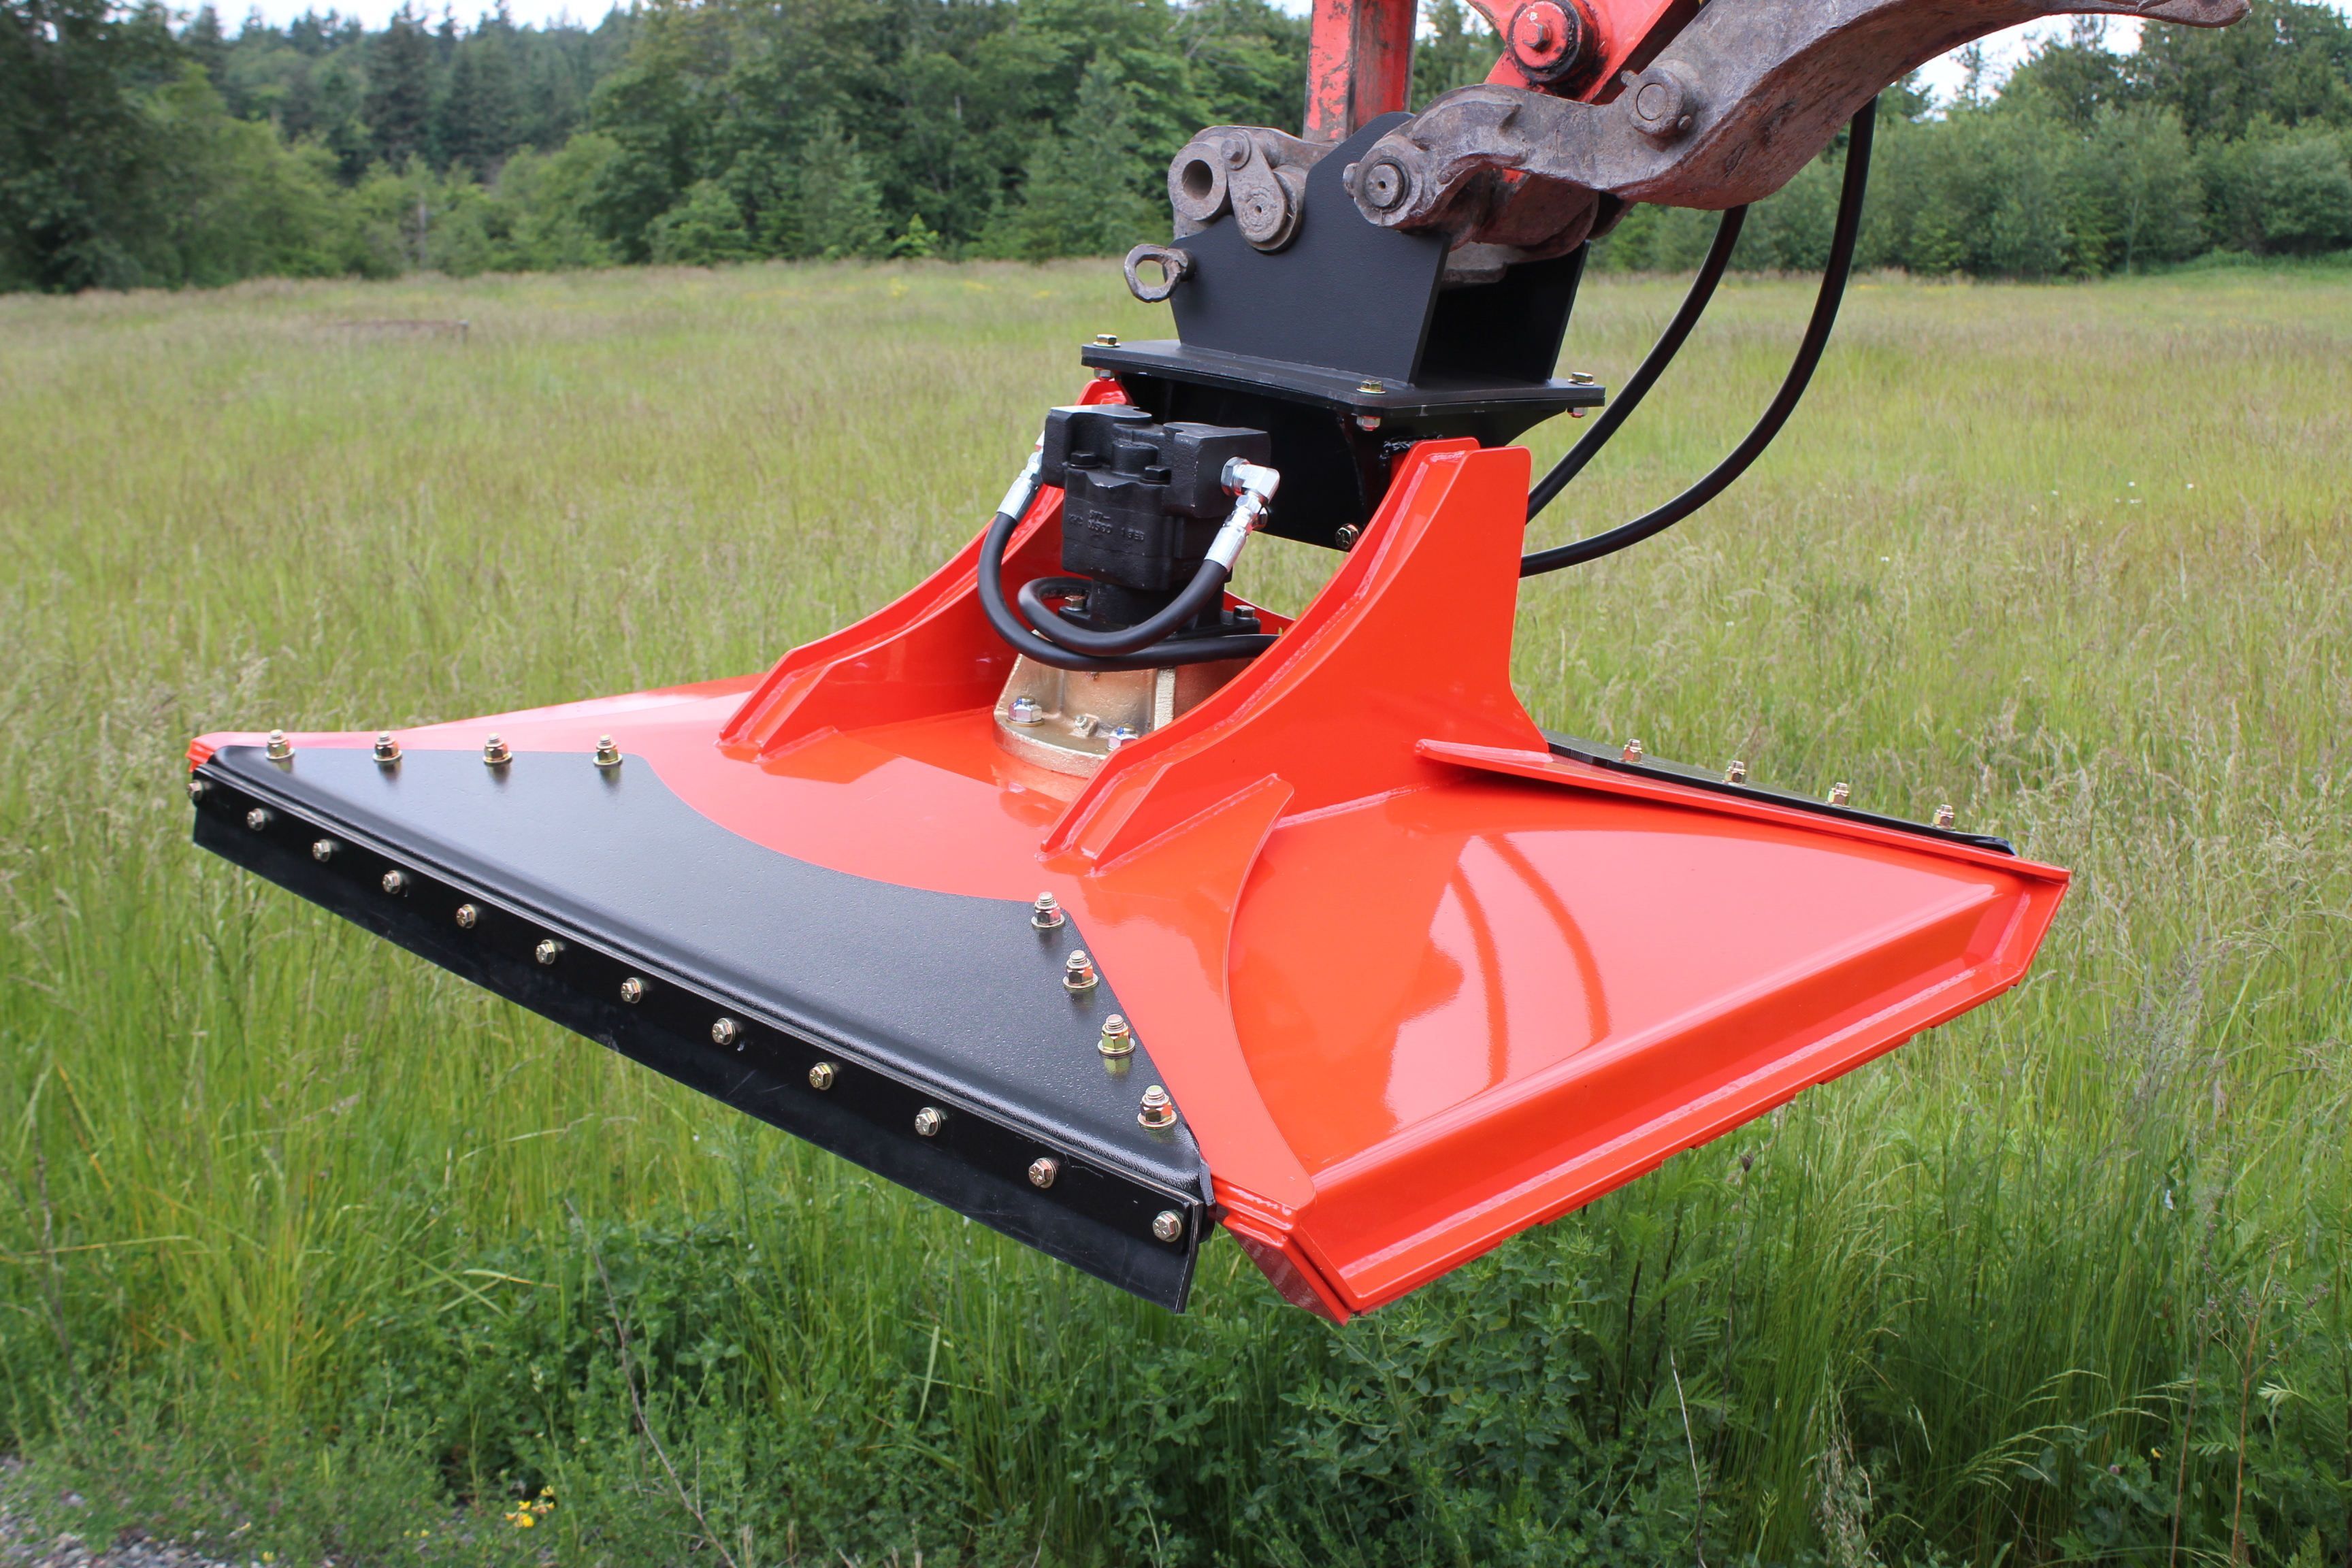 Brush Mower Images - Reverse Search